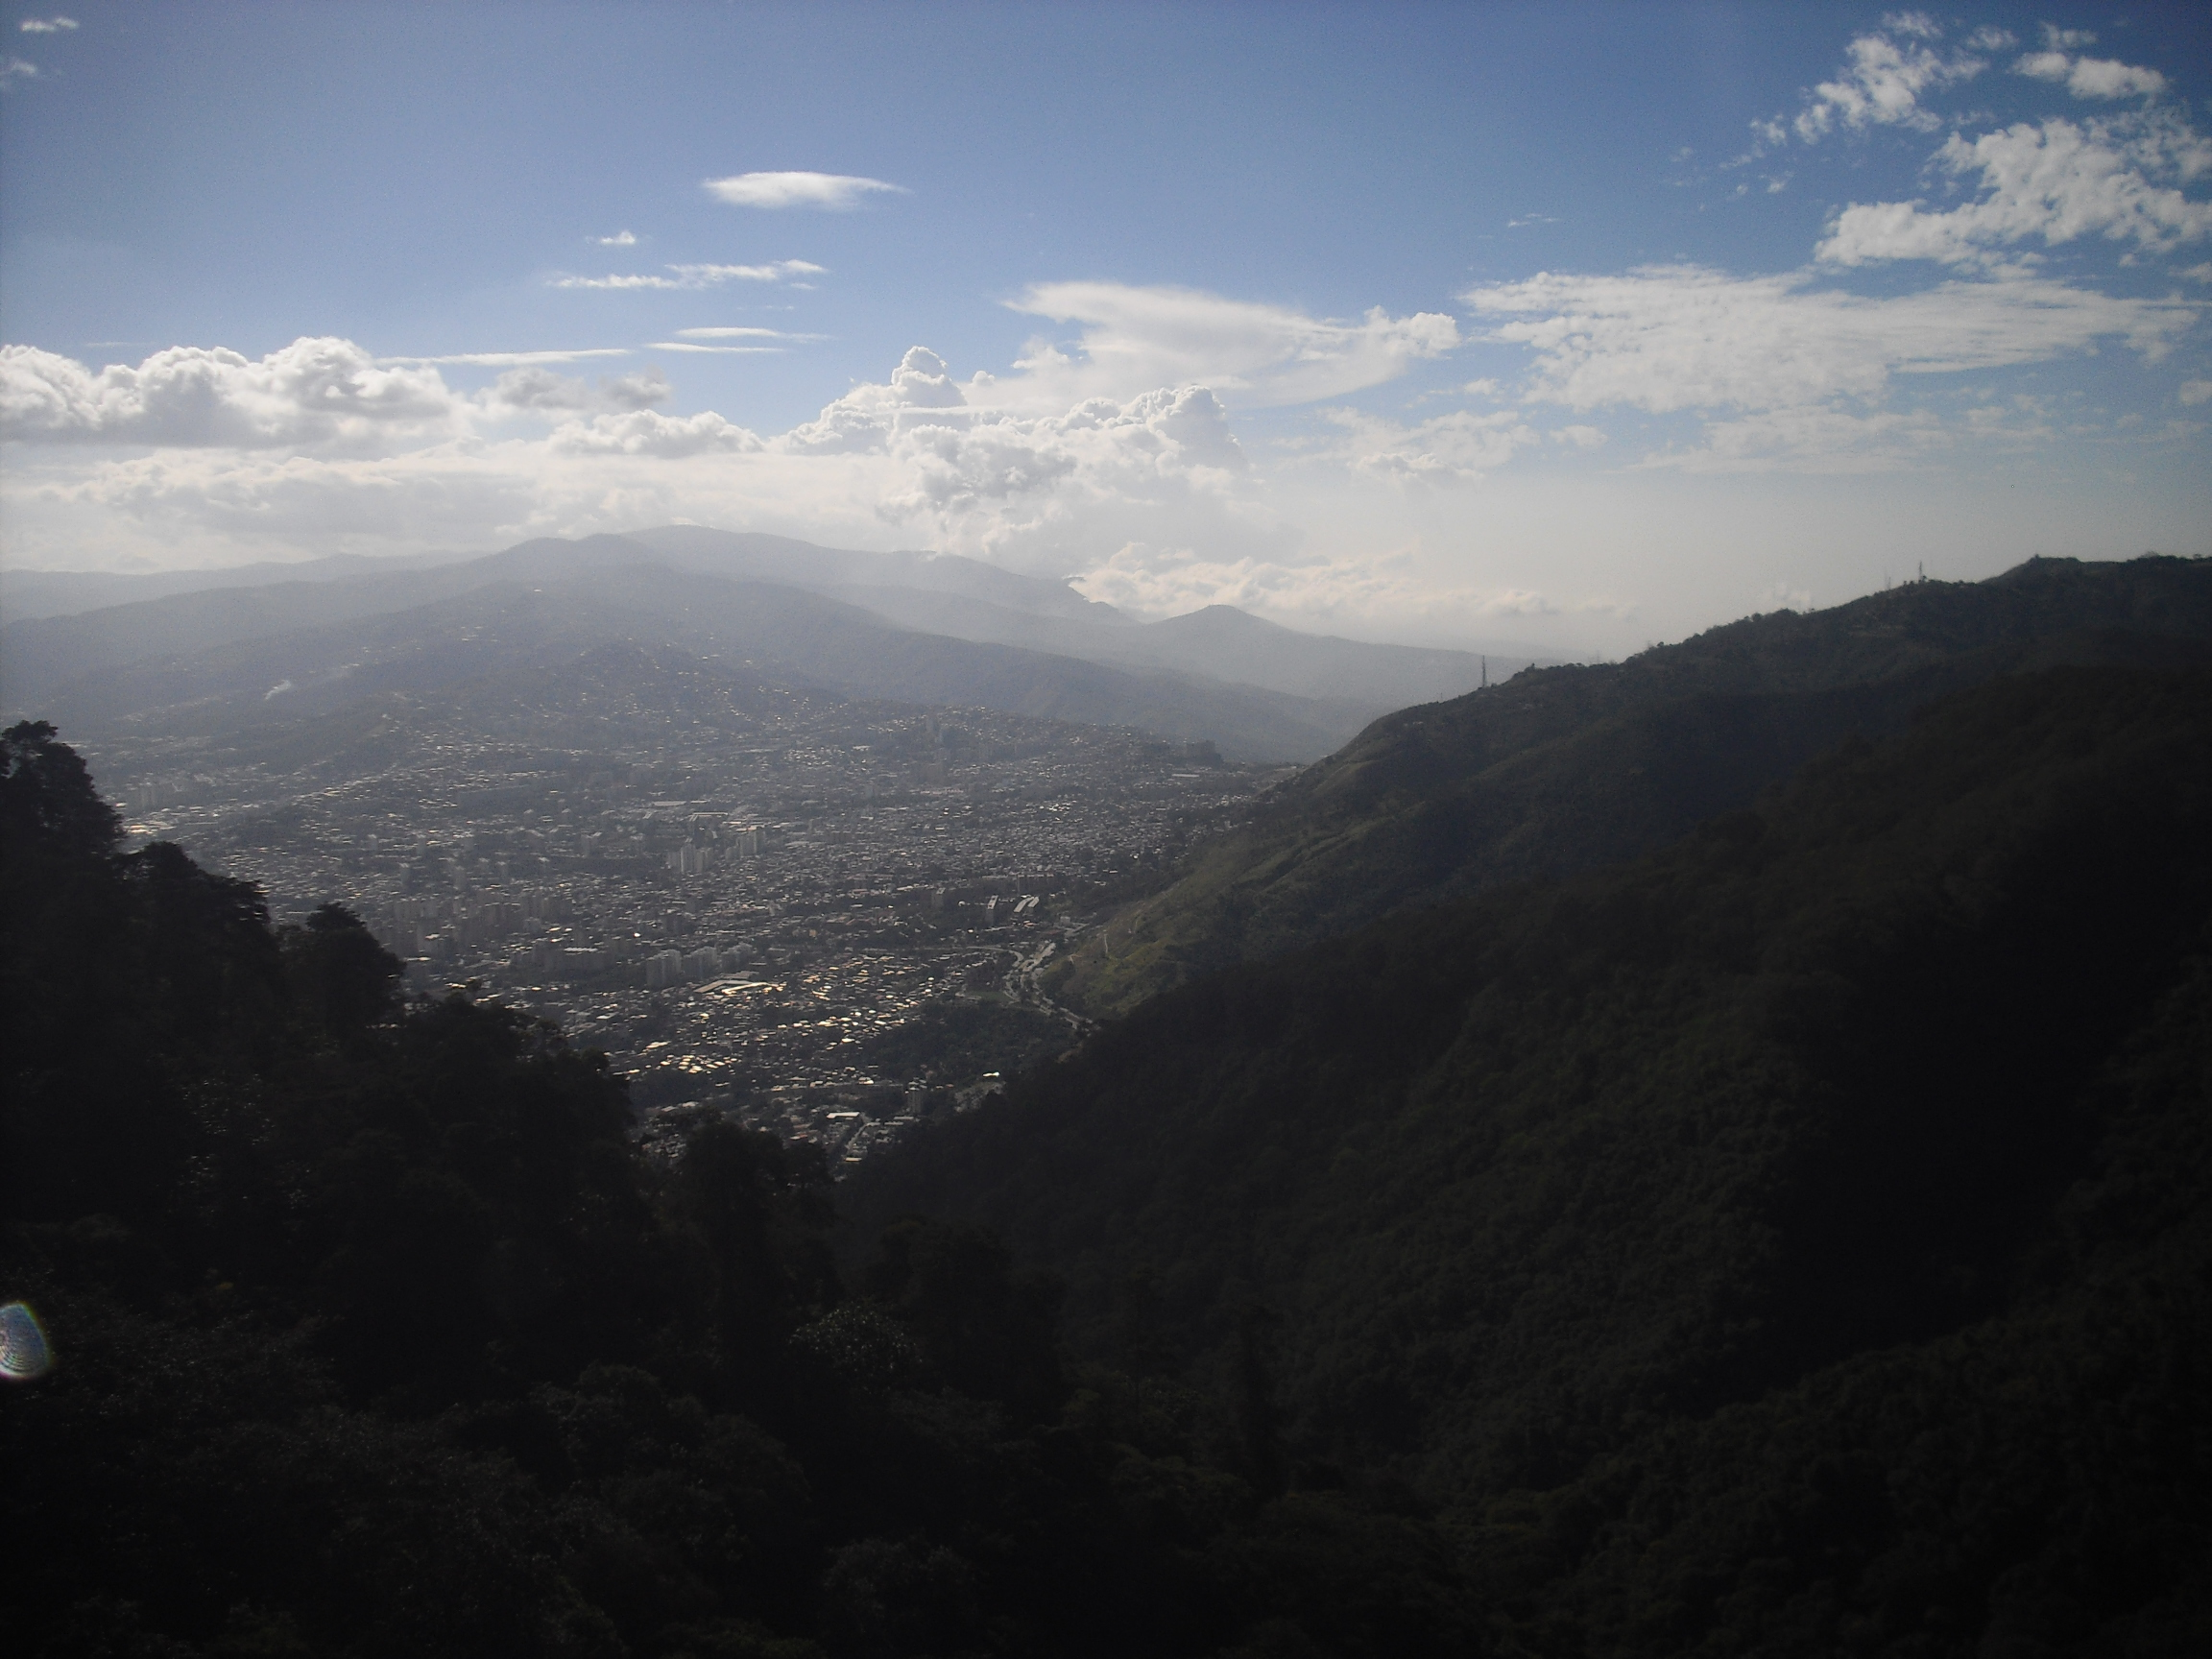 Caracas viewed from, what some people might see as, a safe distance up in Parque Nacional Warairarepano ...